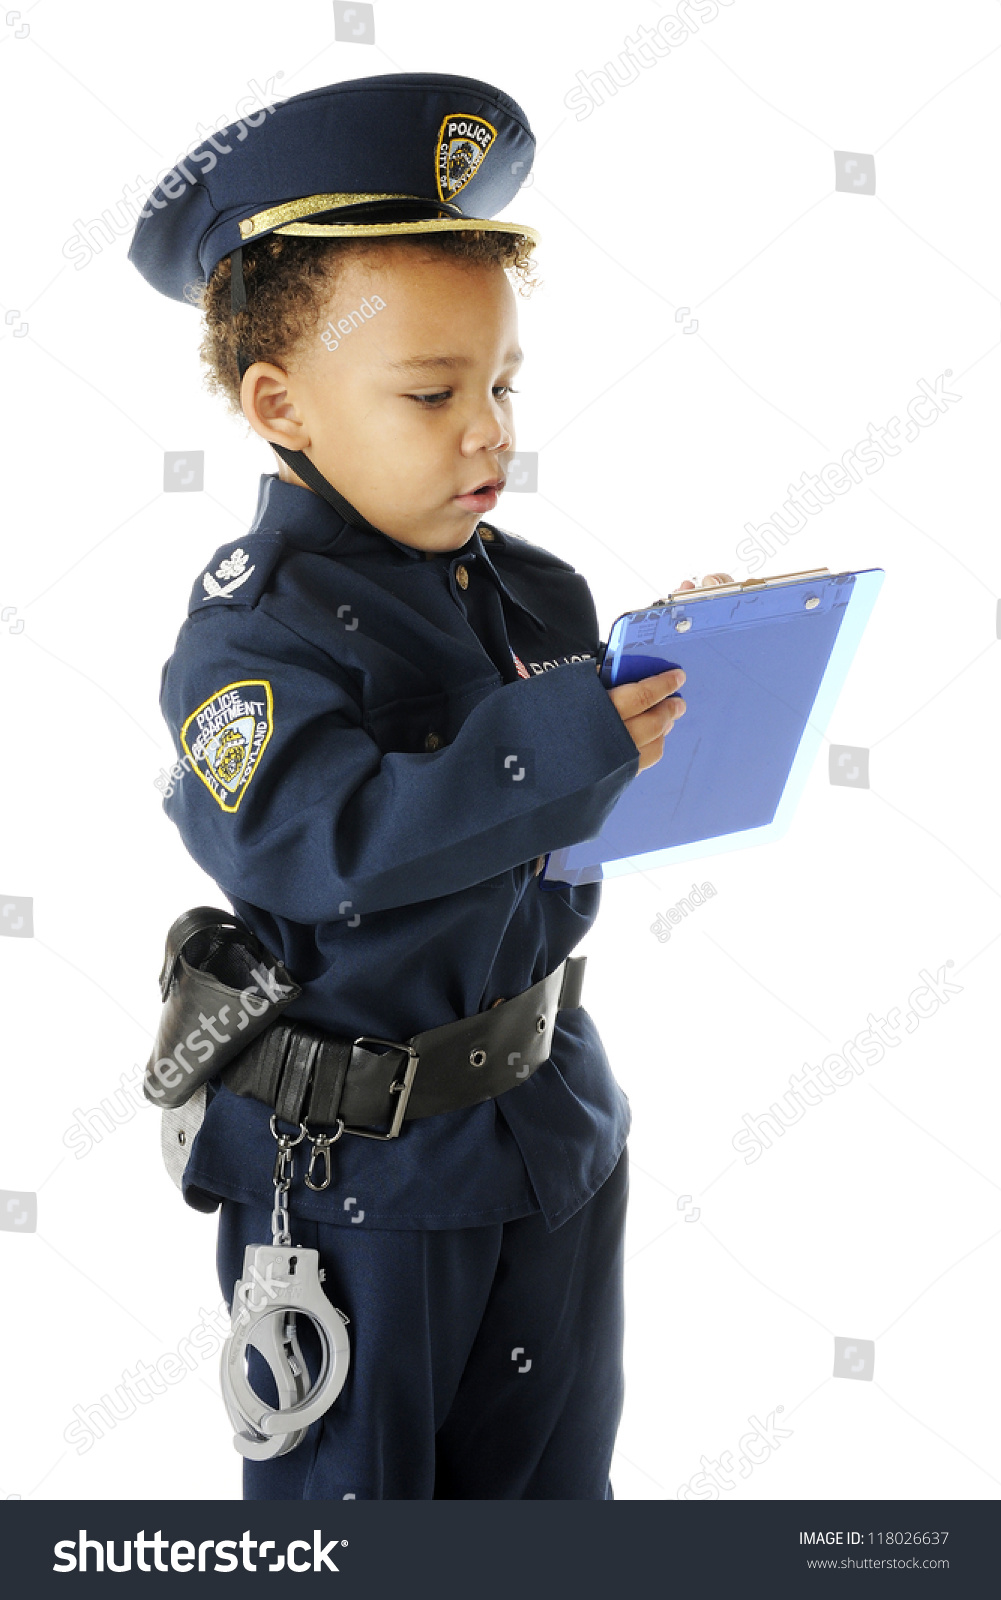 police officer 2 essay Norm for upwardly mobile police officers [2, 130] increasing reliance on the  for  essays on accountability in criminal justice generally, and.